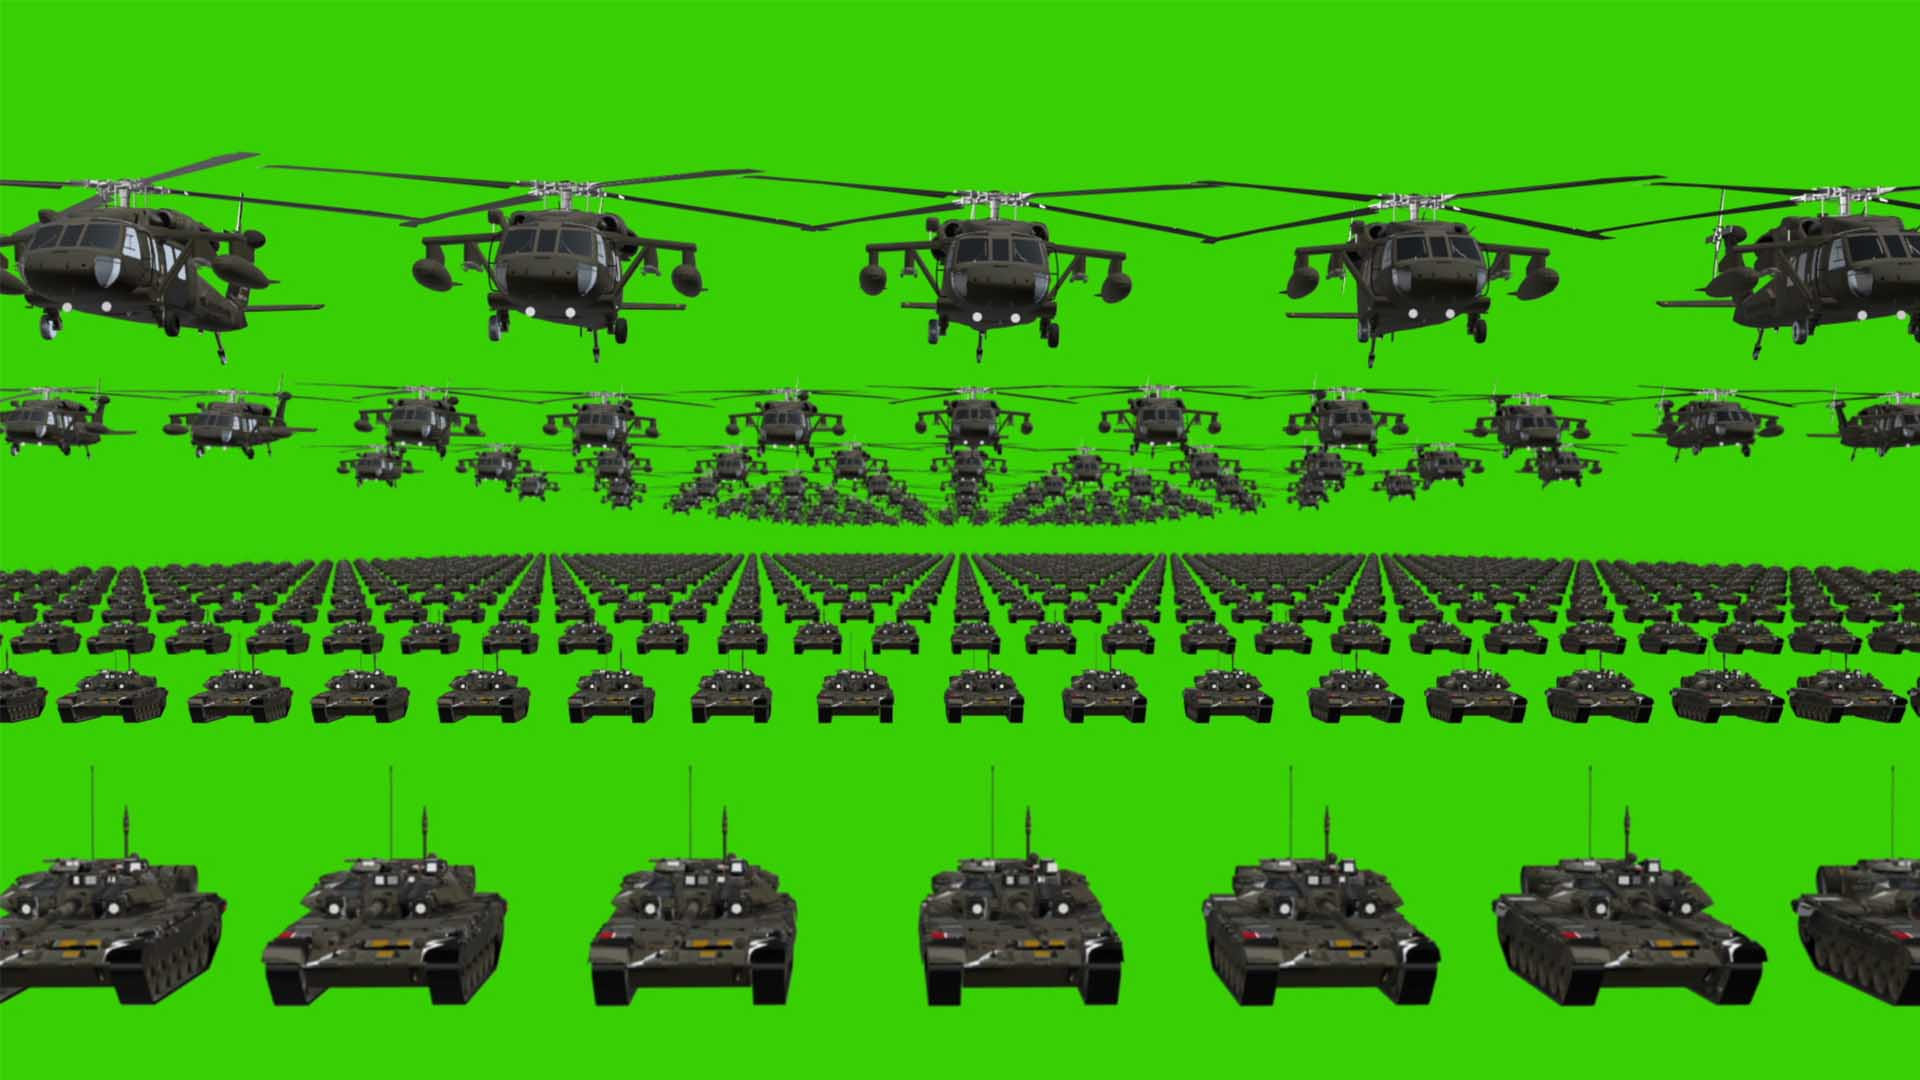 Grand_Army_Warrior_on_Flag_National_Video_Background_3D_Vj_loop green screen